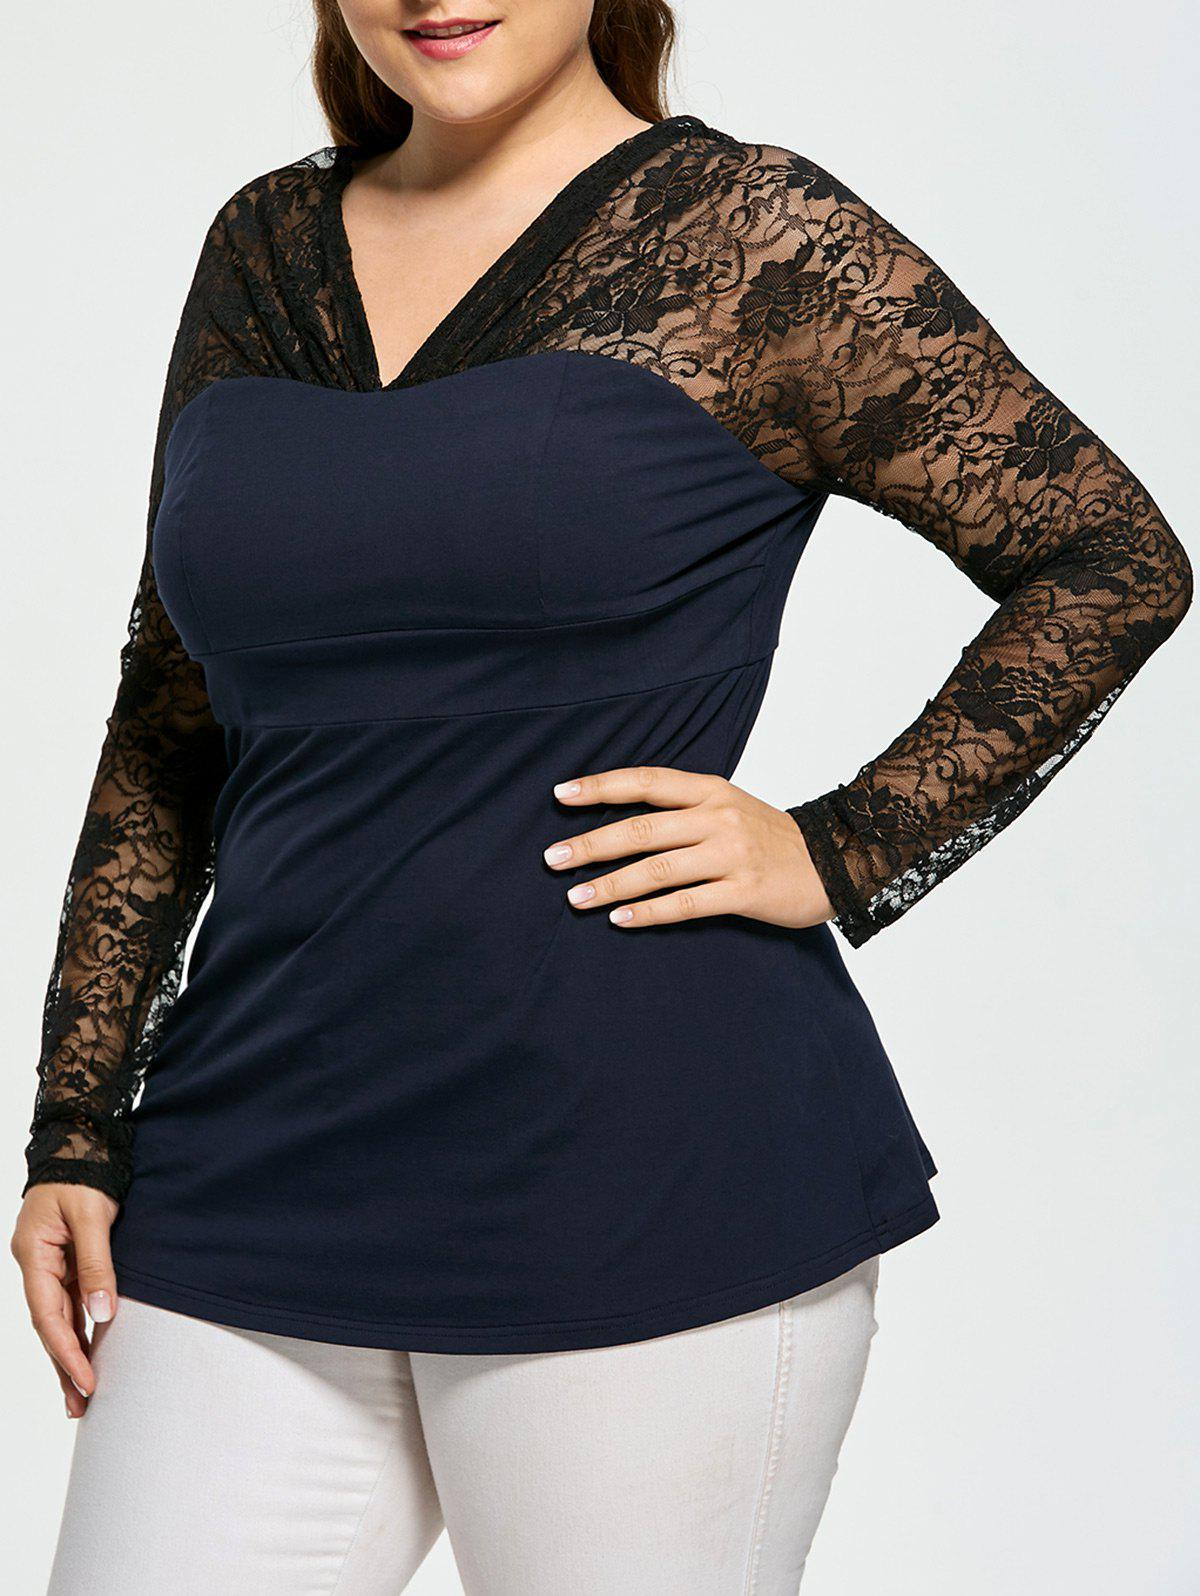 Lace Panel Sheer Plus Size V-neck Top - BLACK 4XL